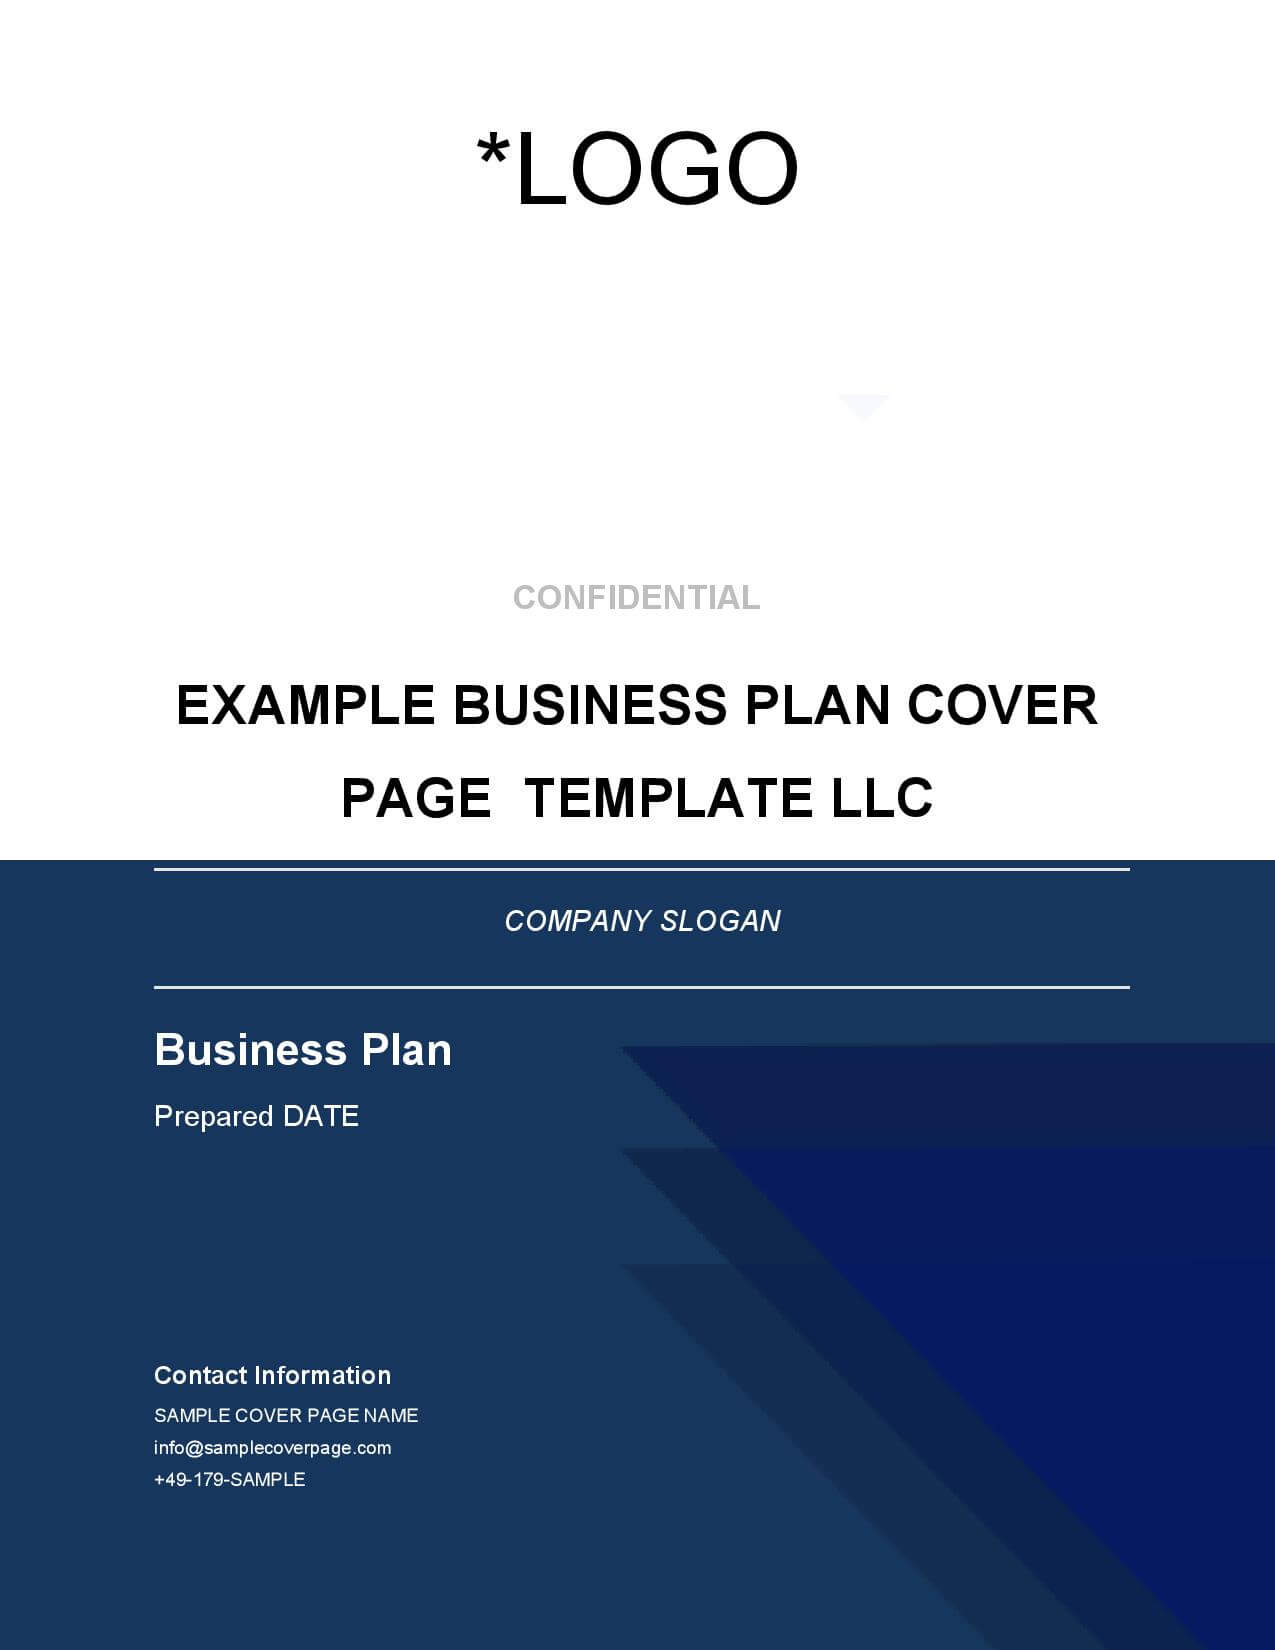 Business plan cover page template brainhive business planning businessplan cover page template en 1 page 001 accmission Gallery